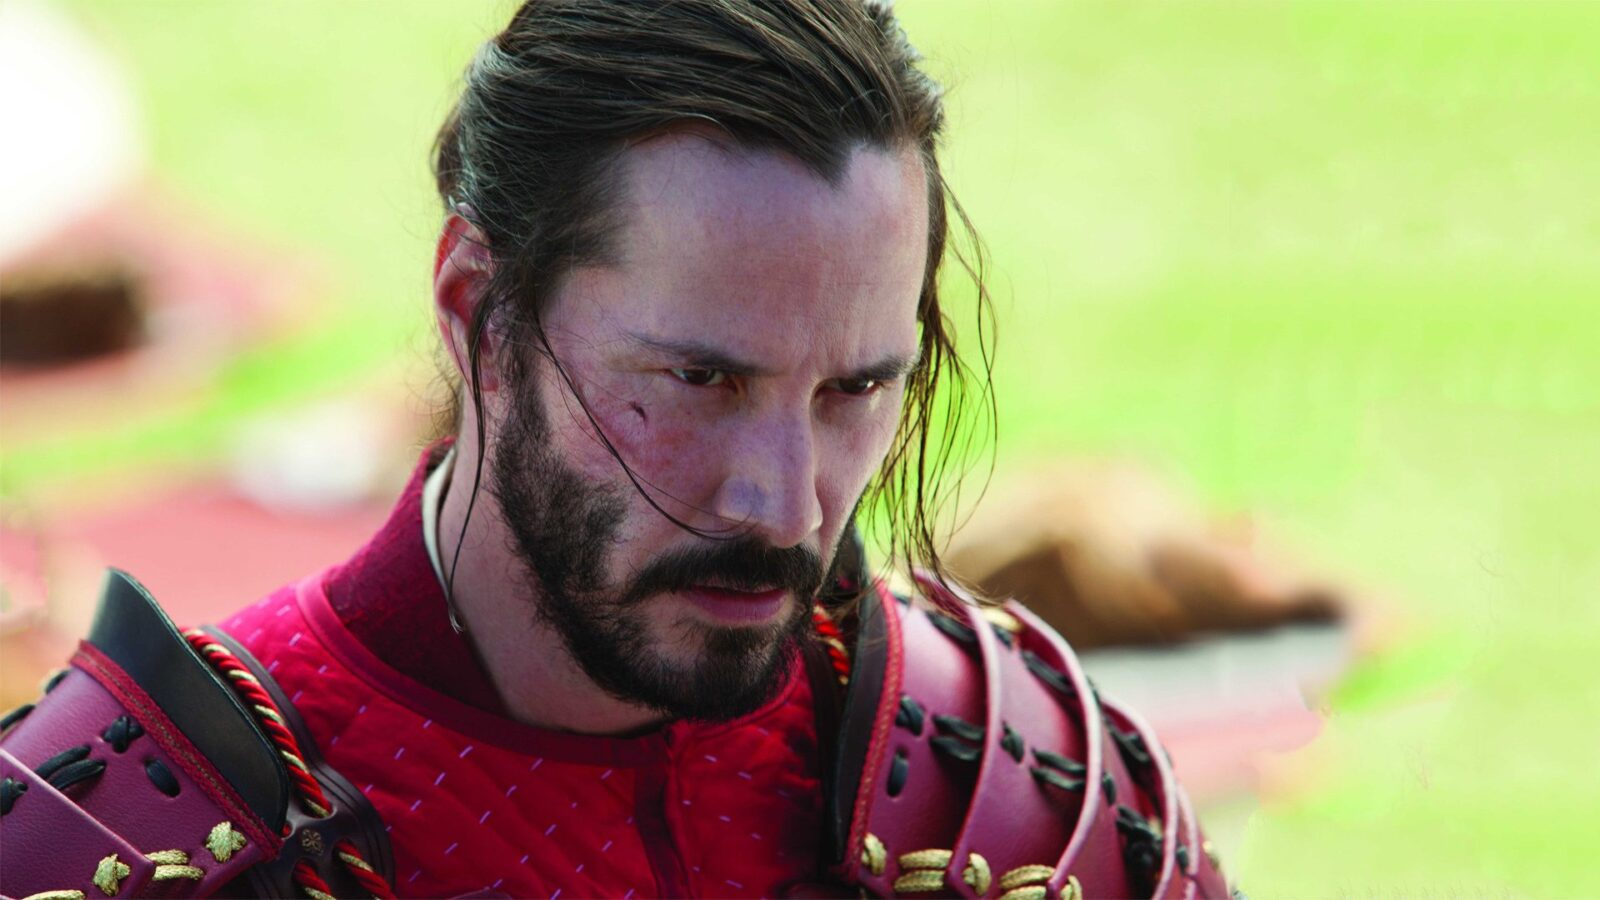 The 47 Ronin will have a cyberpunk sequel